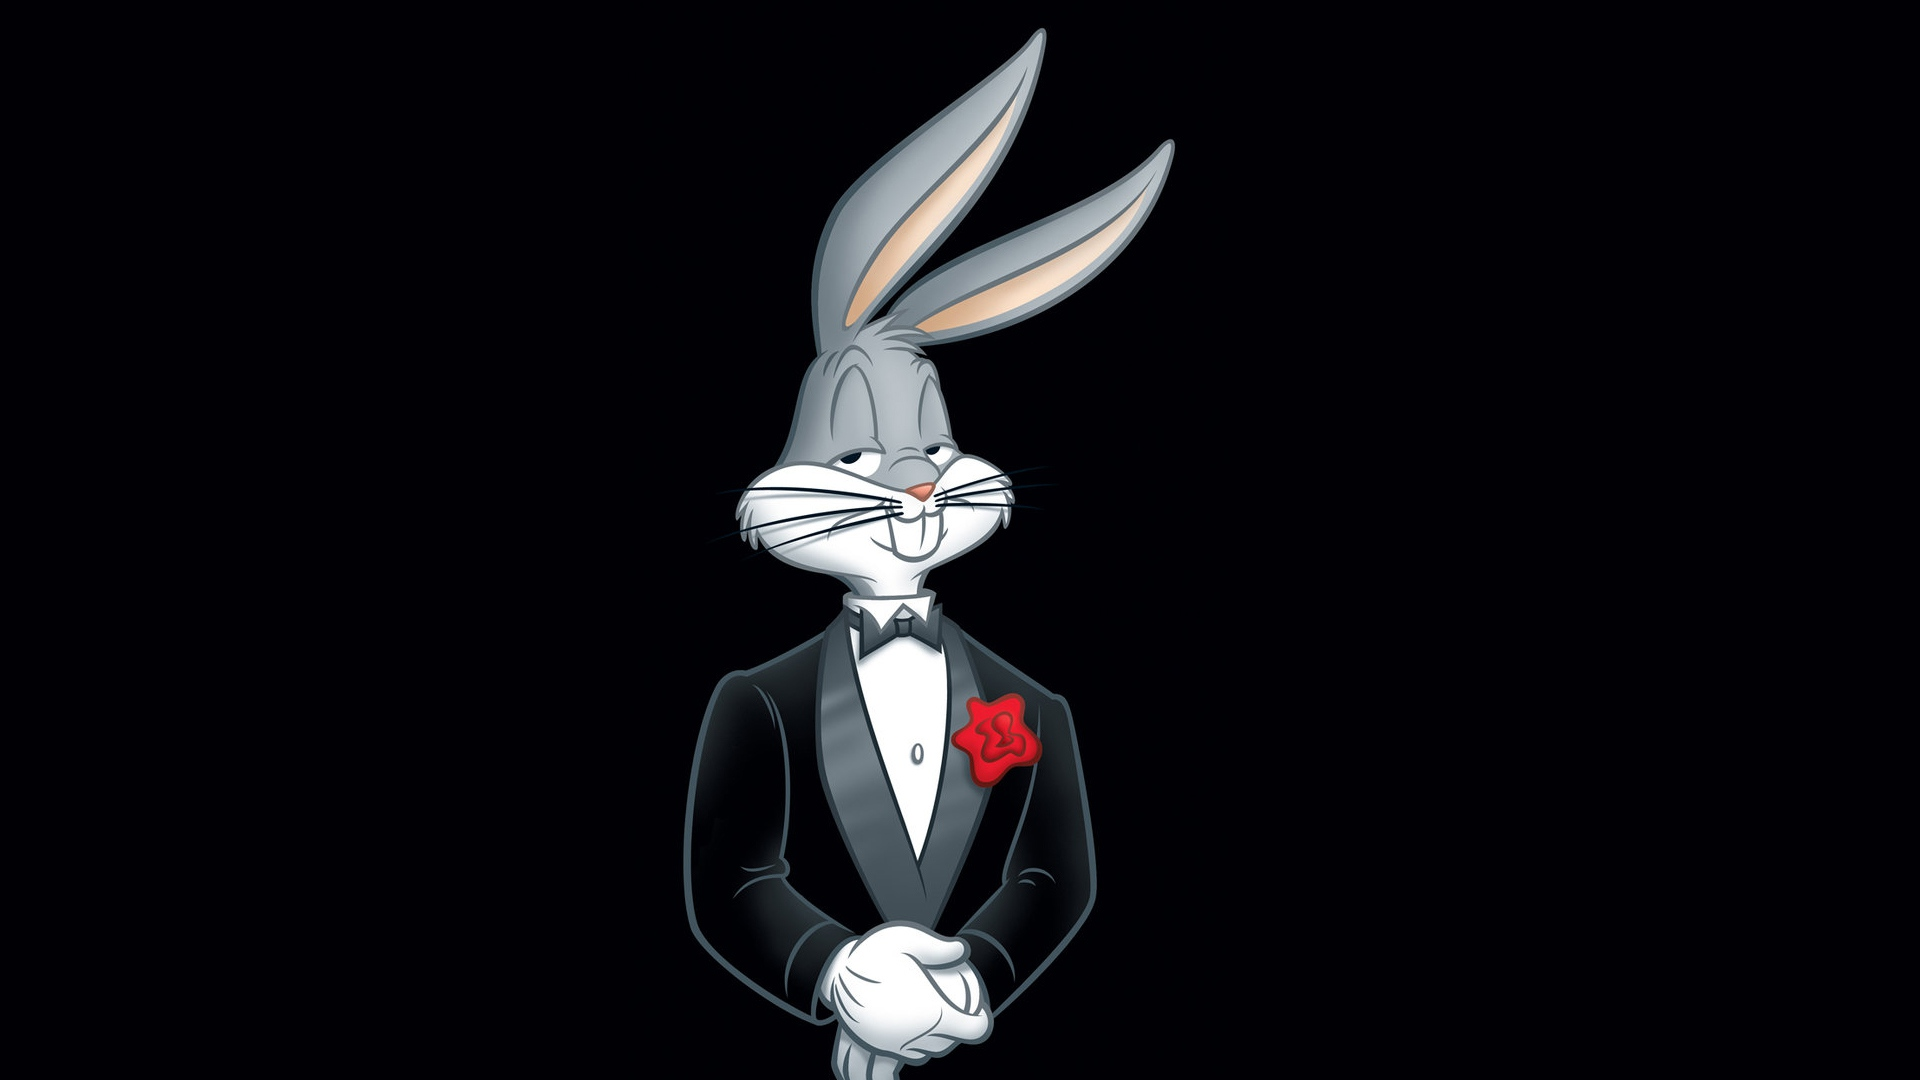 Download 1920x1080 HD Wallpaper bugs bunny cartoon smoking 1920x1080